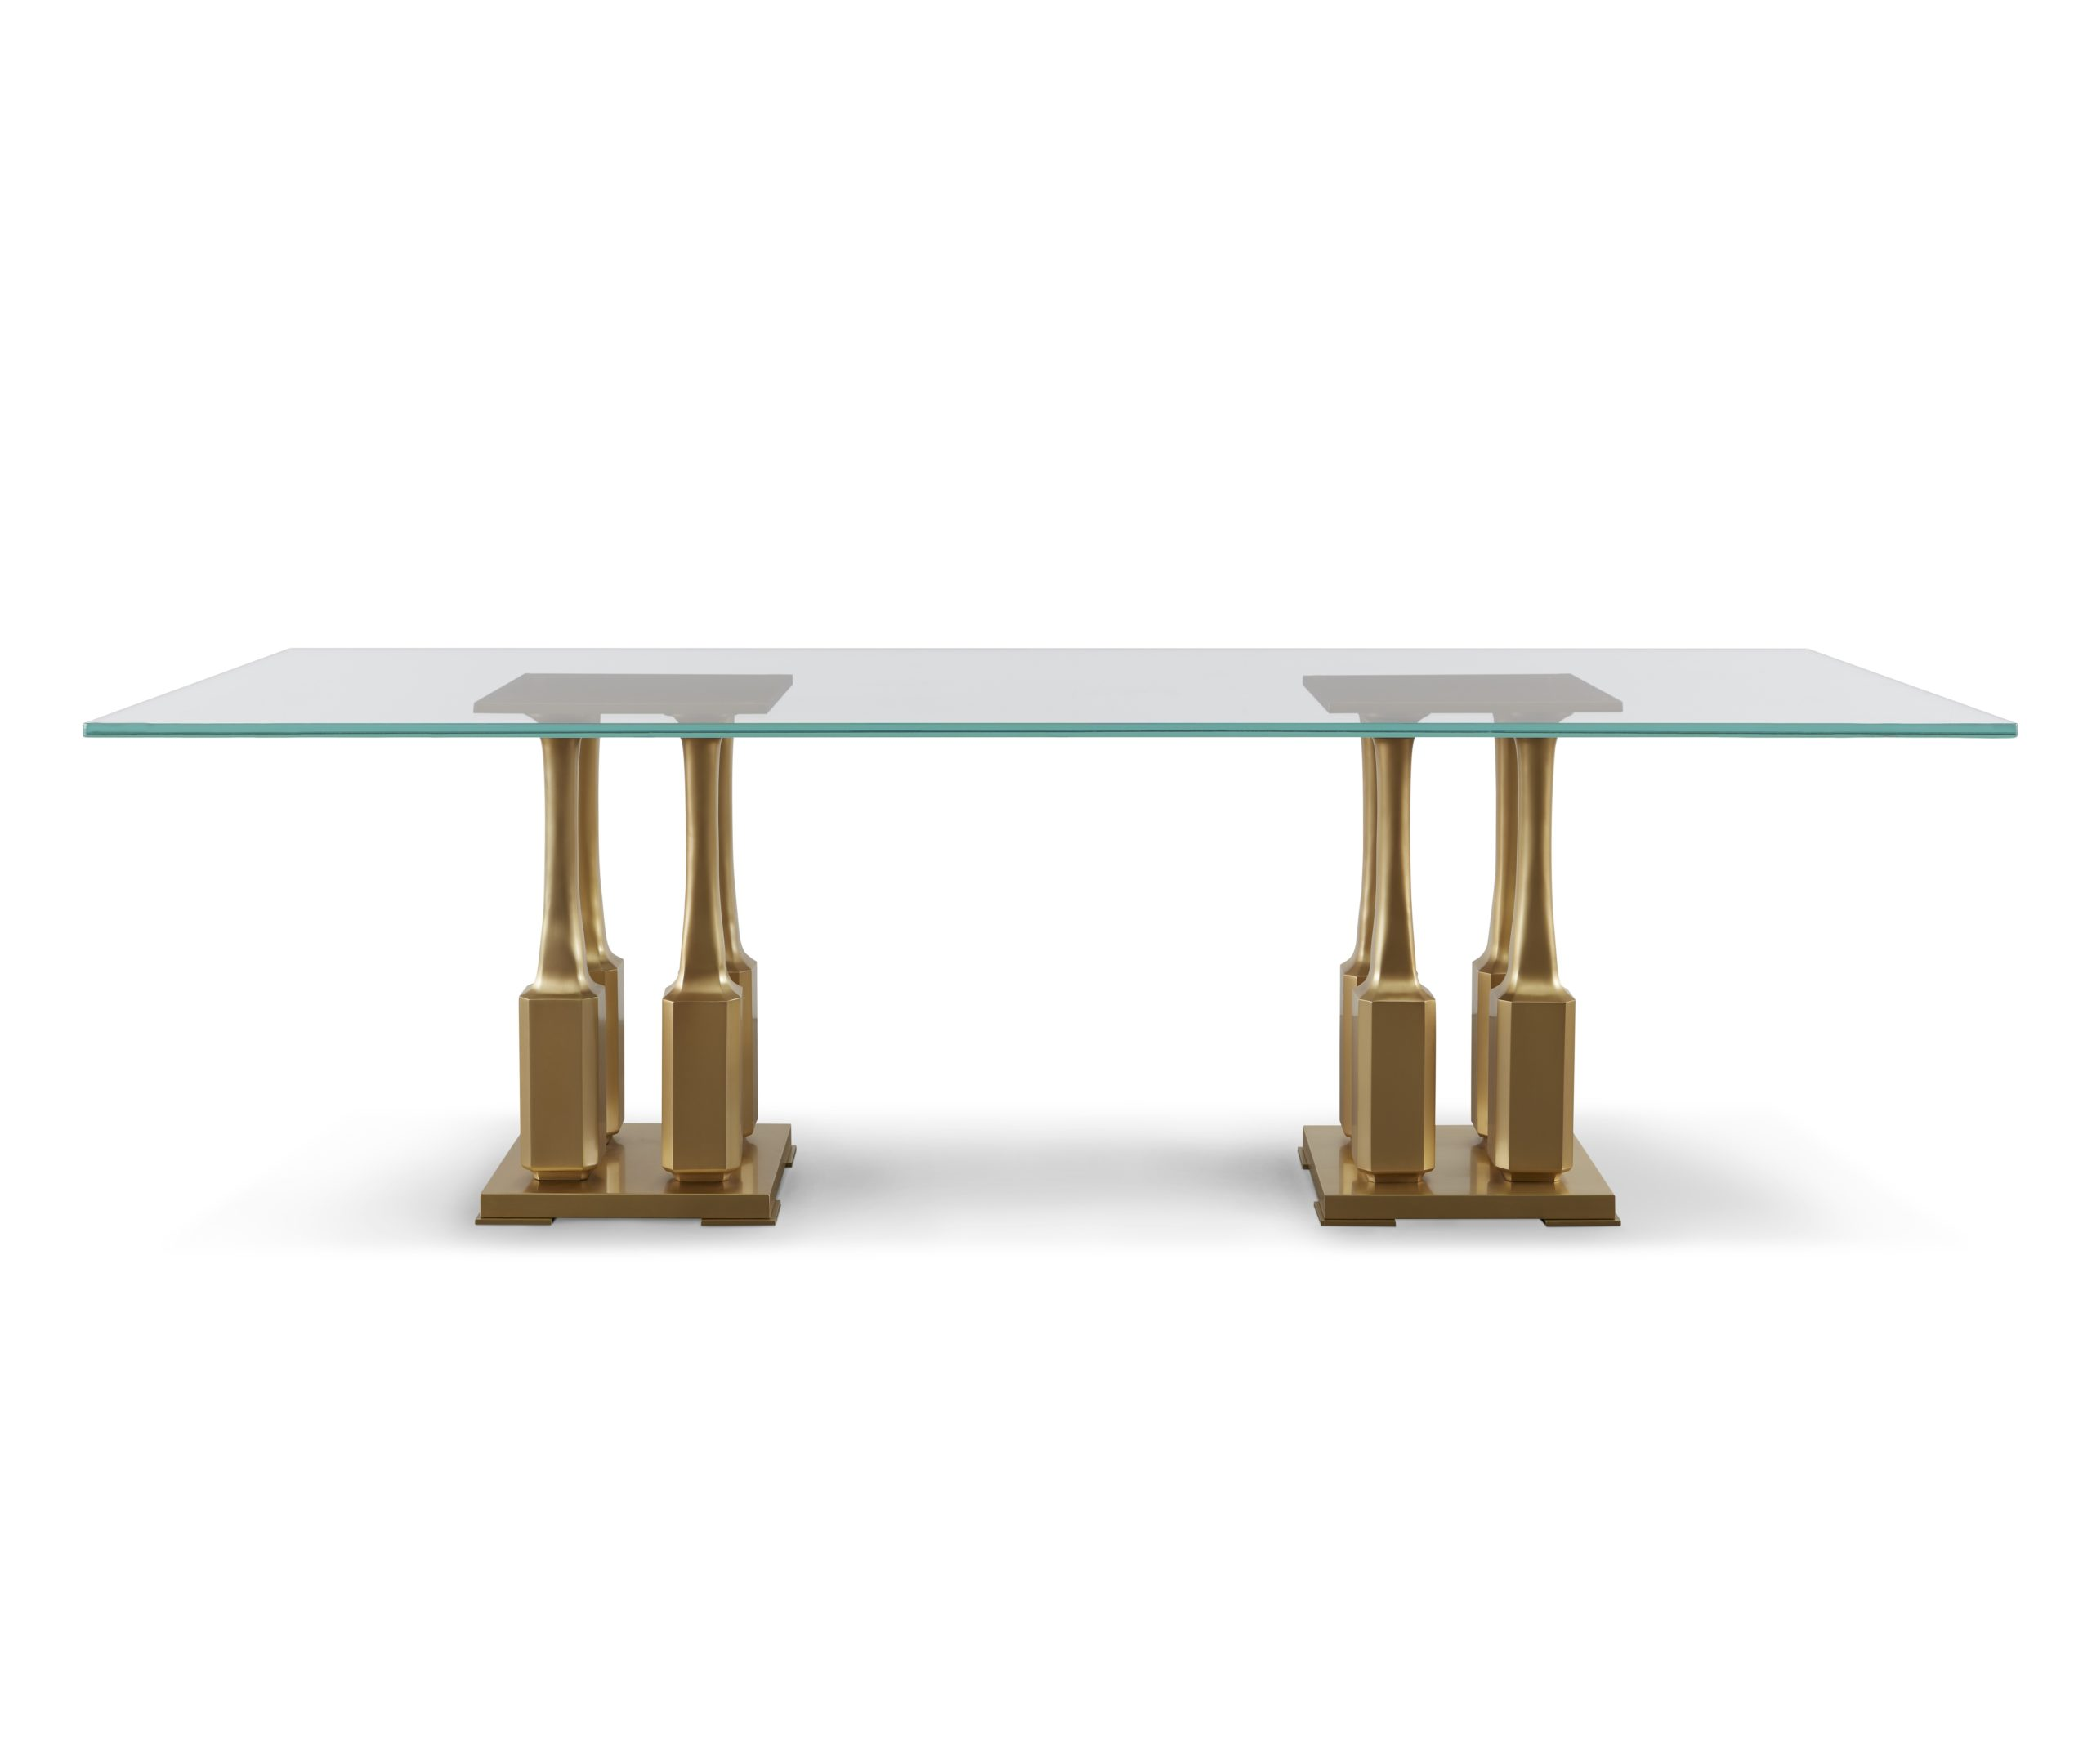 Baker_products_WNWN_villa_dining_table_BAA3237_FRONT-scaled-2